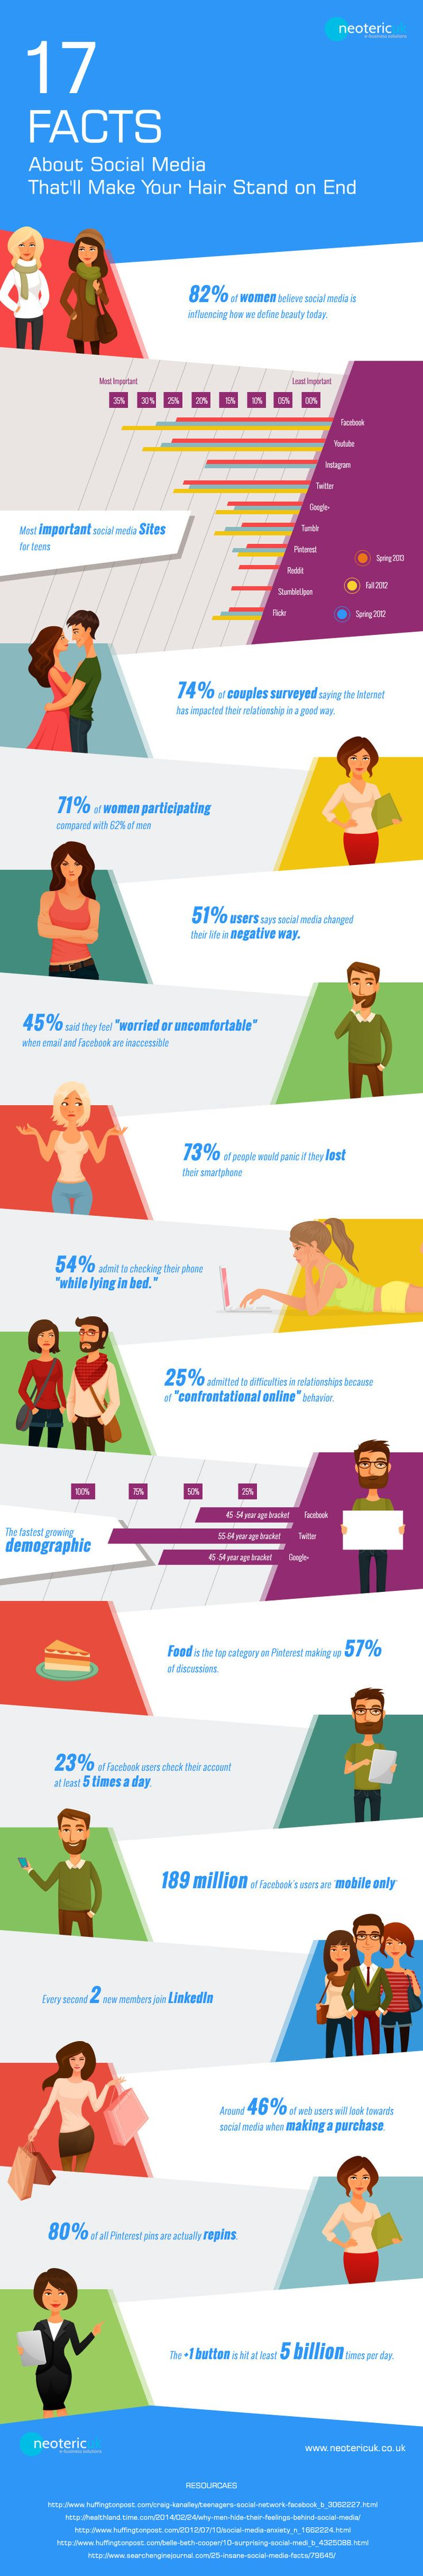 #SocialMedia Stats That'll Make Your Hair Stand on End! - #infographic #SMM #in